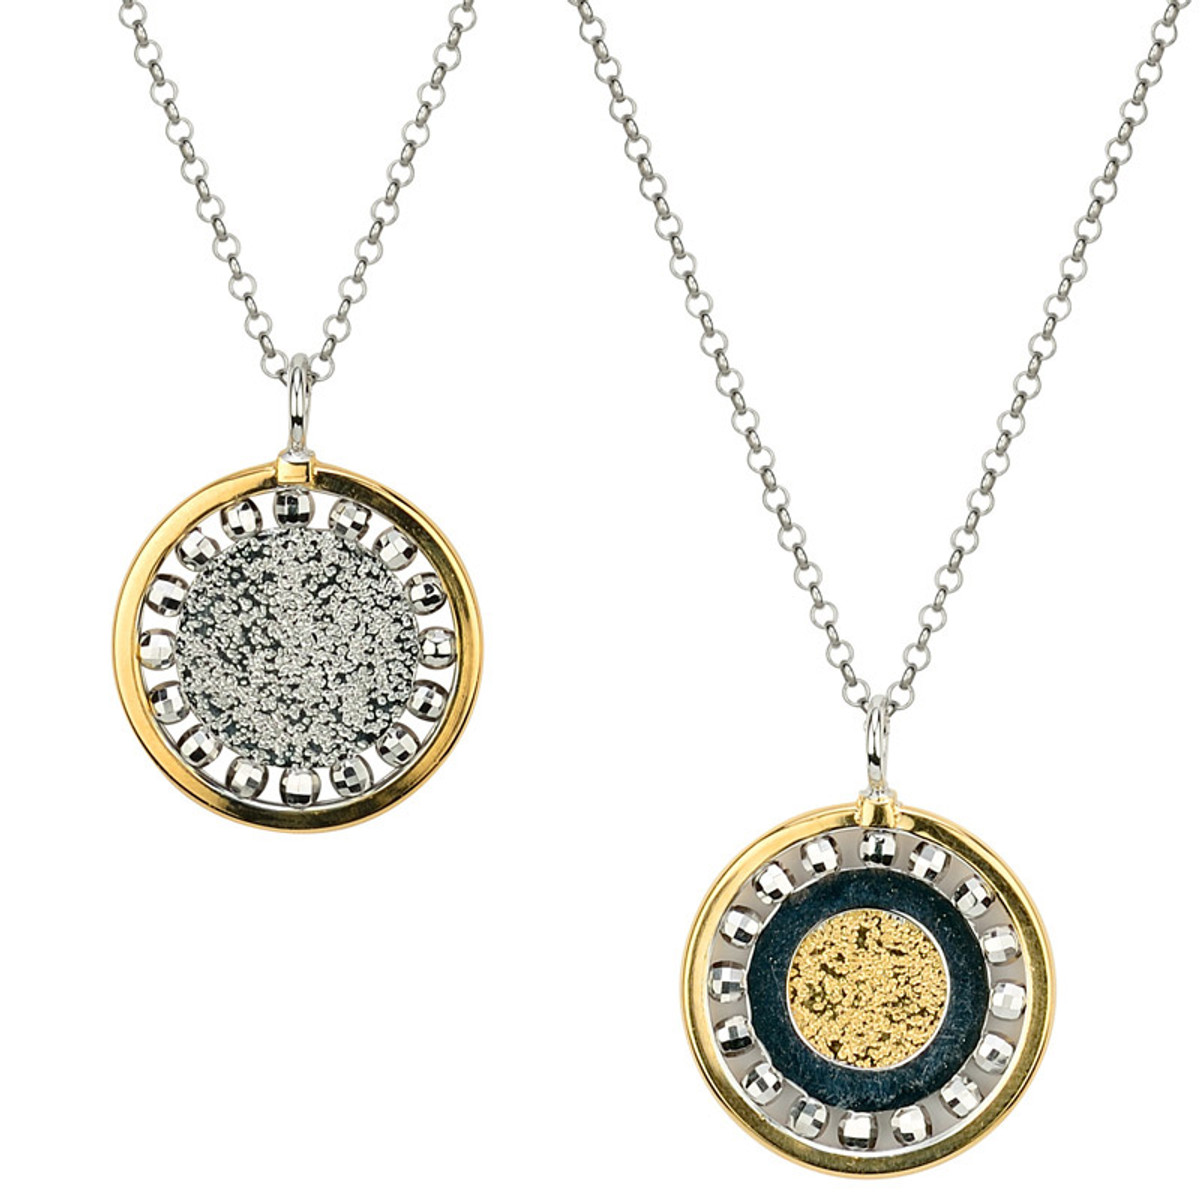 Sterling Silver Gold Overlay Reversible Necklace, Frederic Duclos